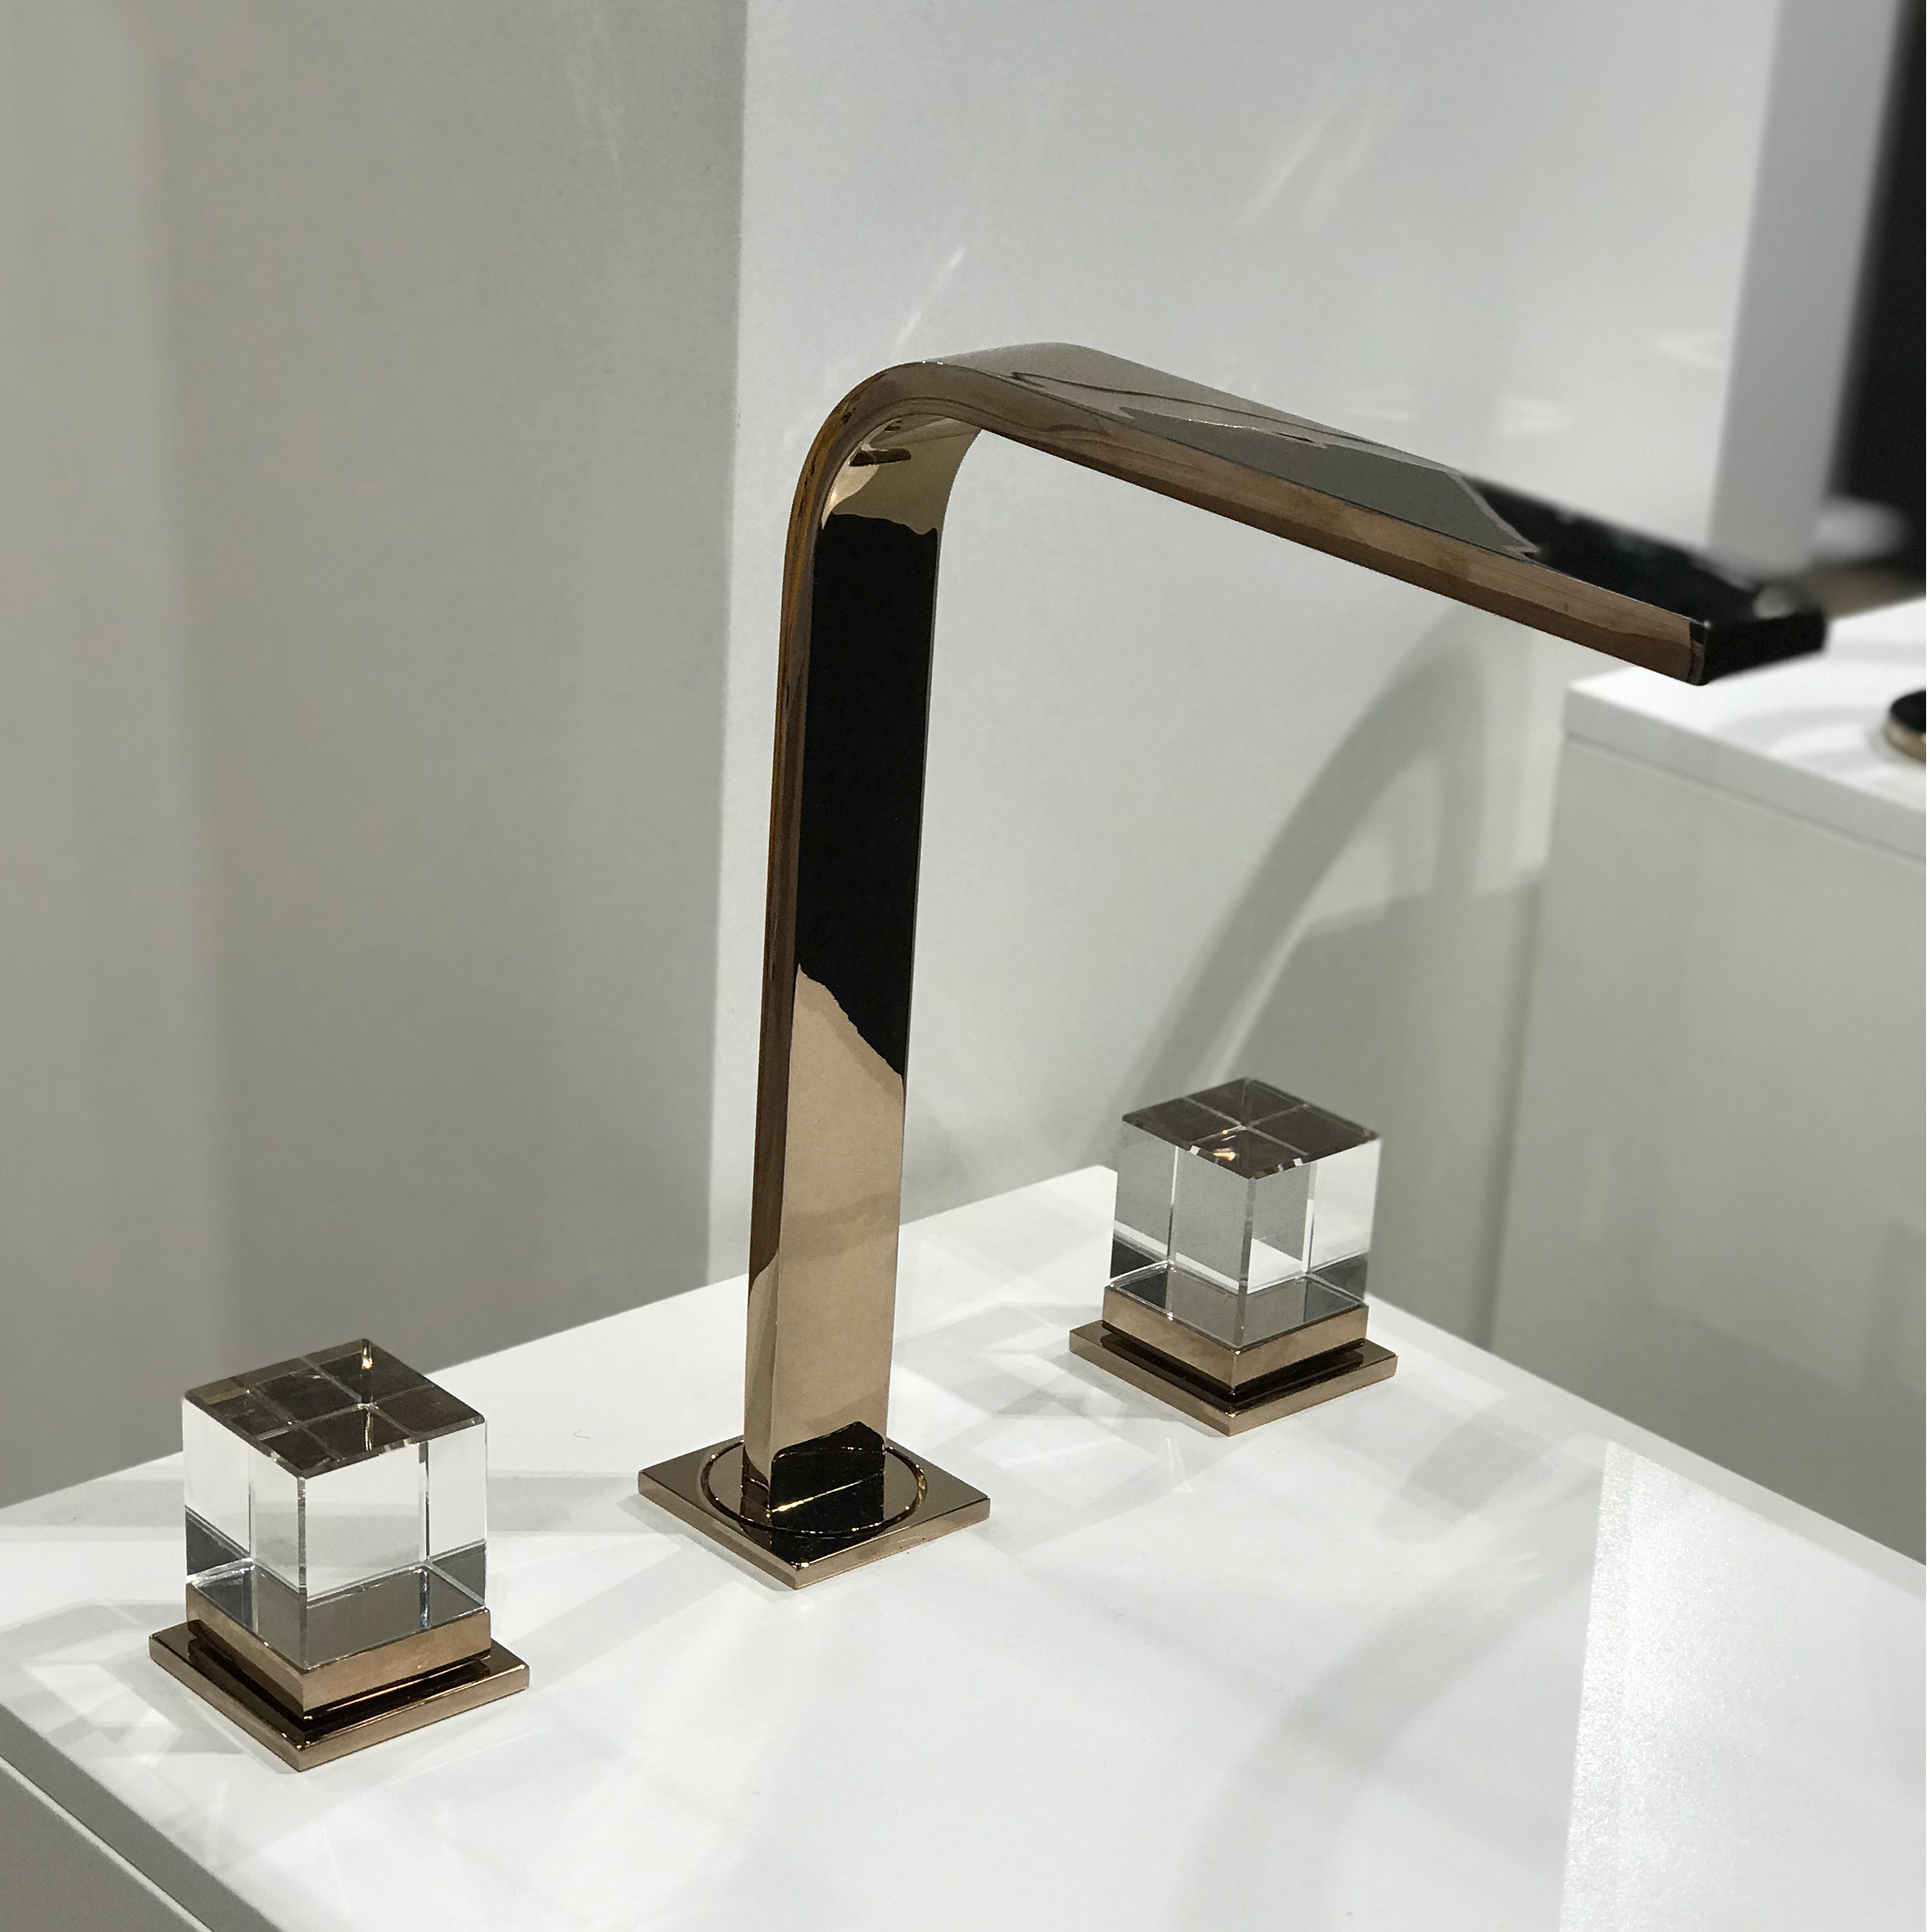 icff, new york, trade show, dmv designer, washington dc, maryland, bowie maryland, virginia, dreamer, interior designer, kitchen designer, faucets